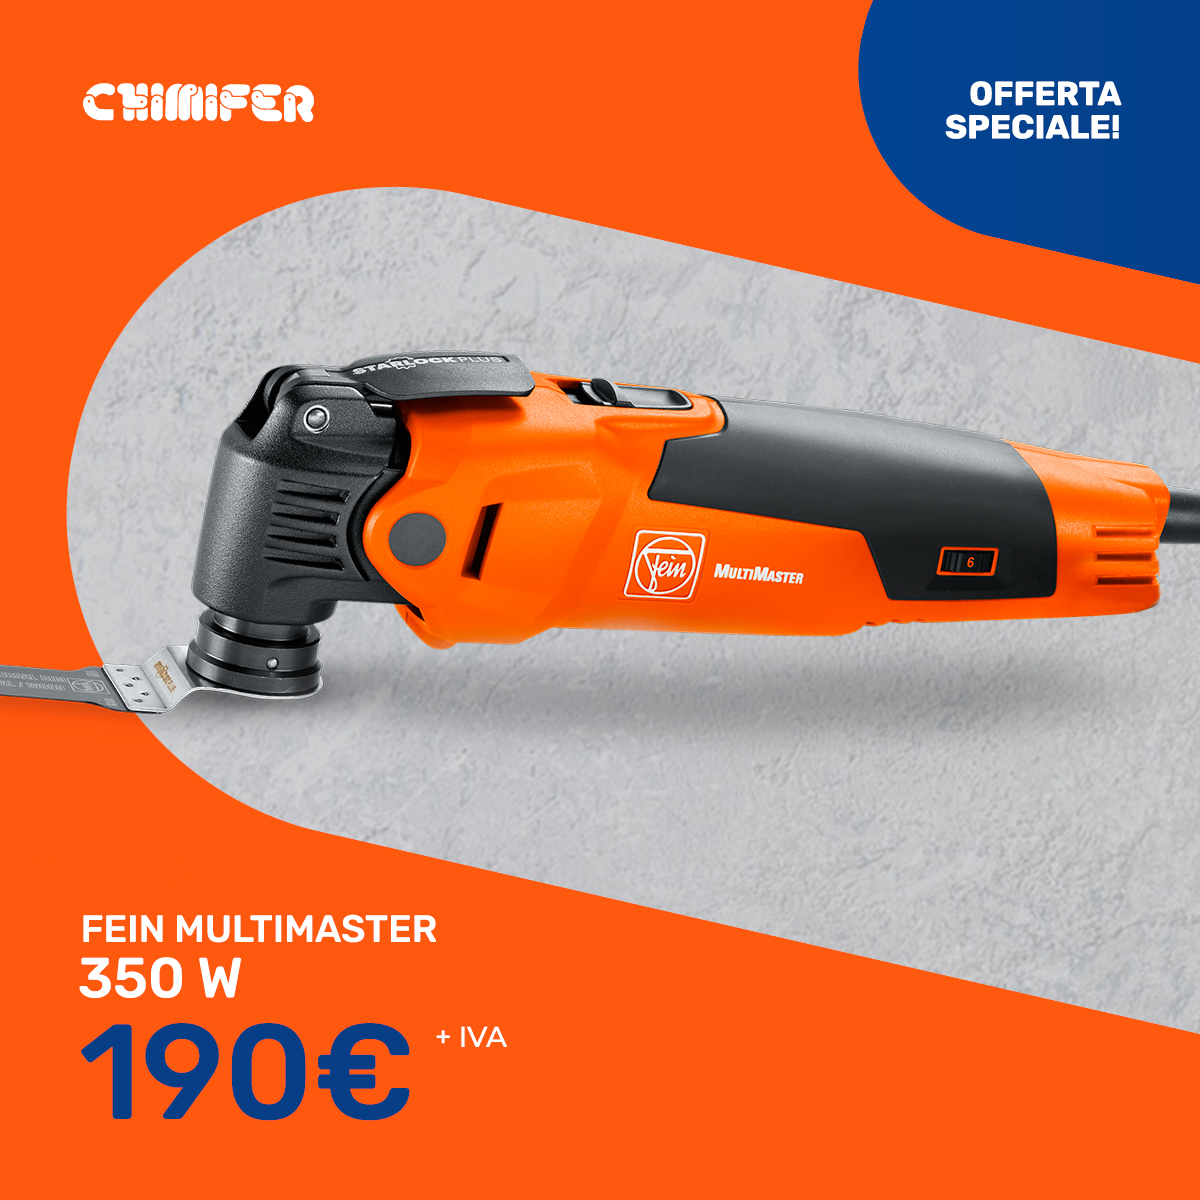 Multimaster-350-fein-offerta-chimifer